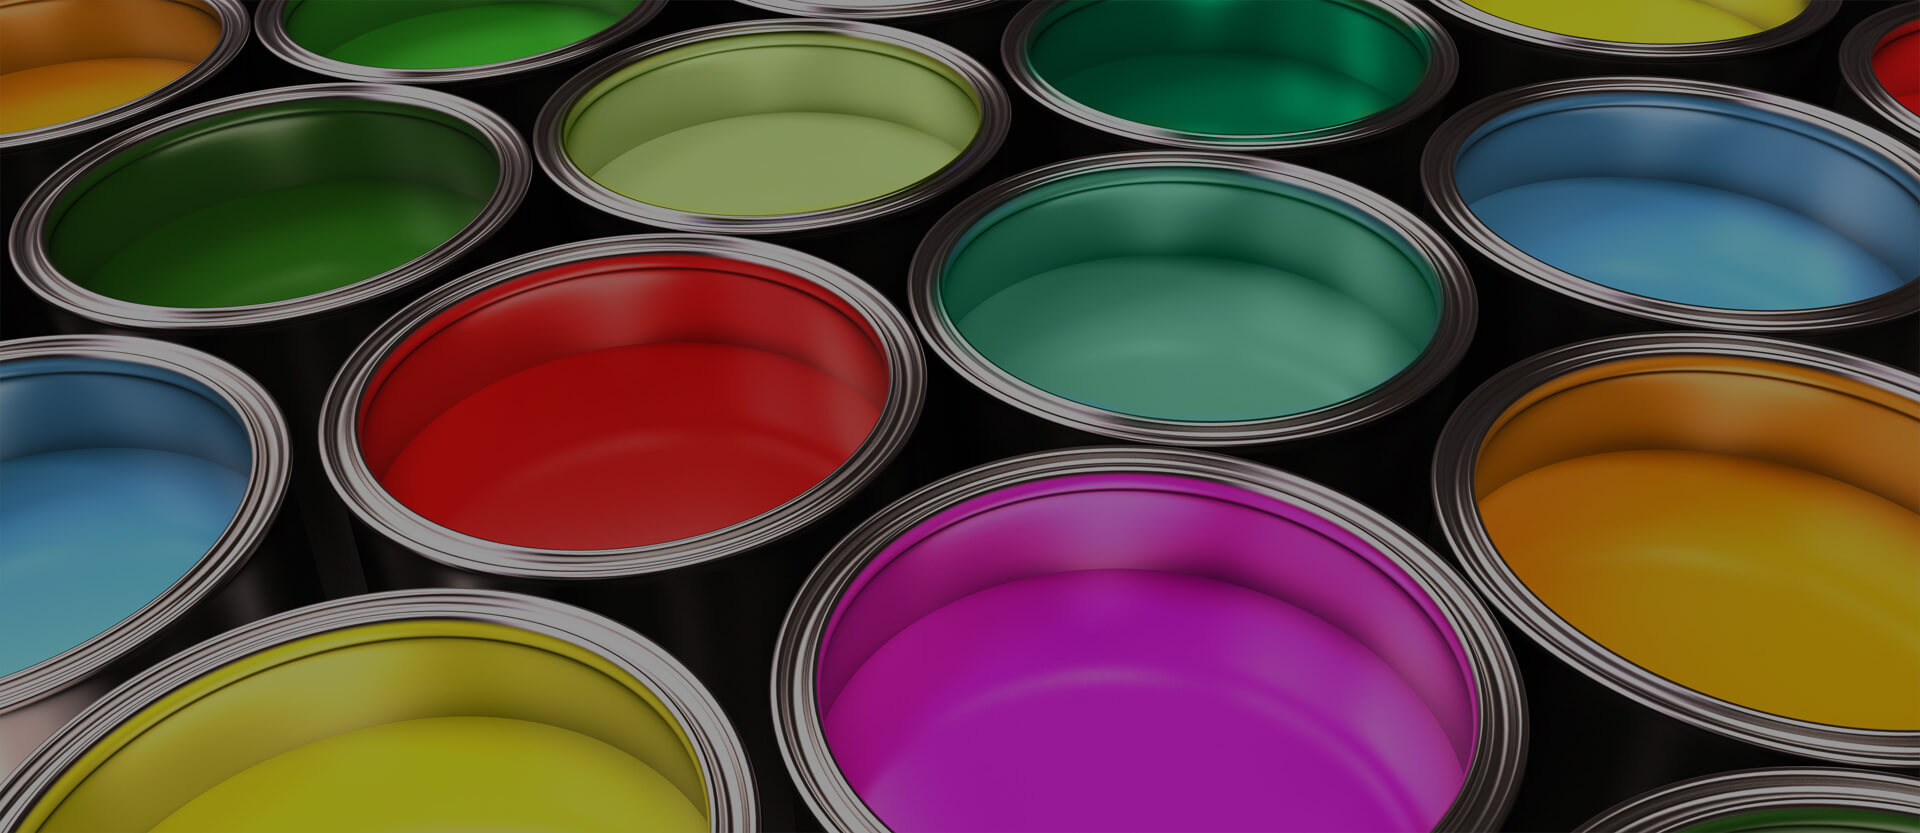 The paints and coatings industry uses ERA's EHS software system for all their needs.